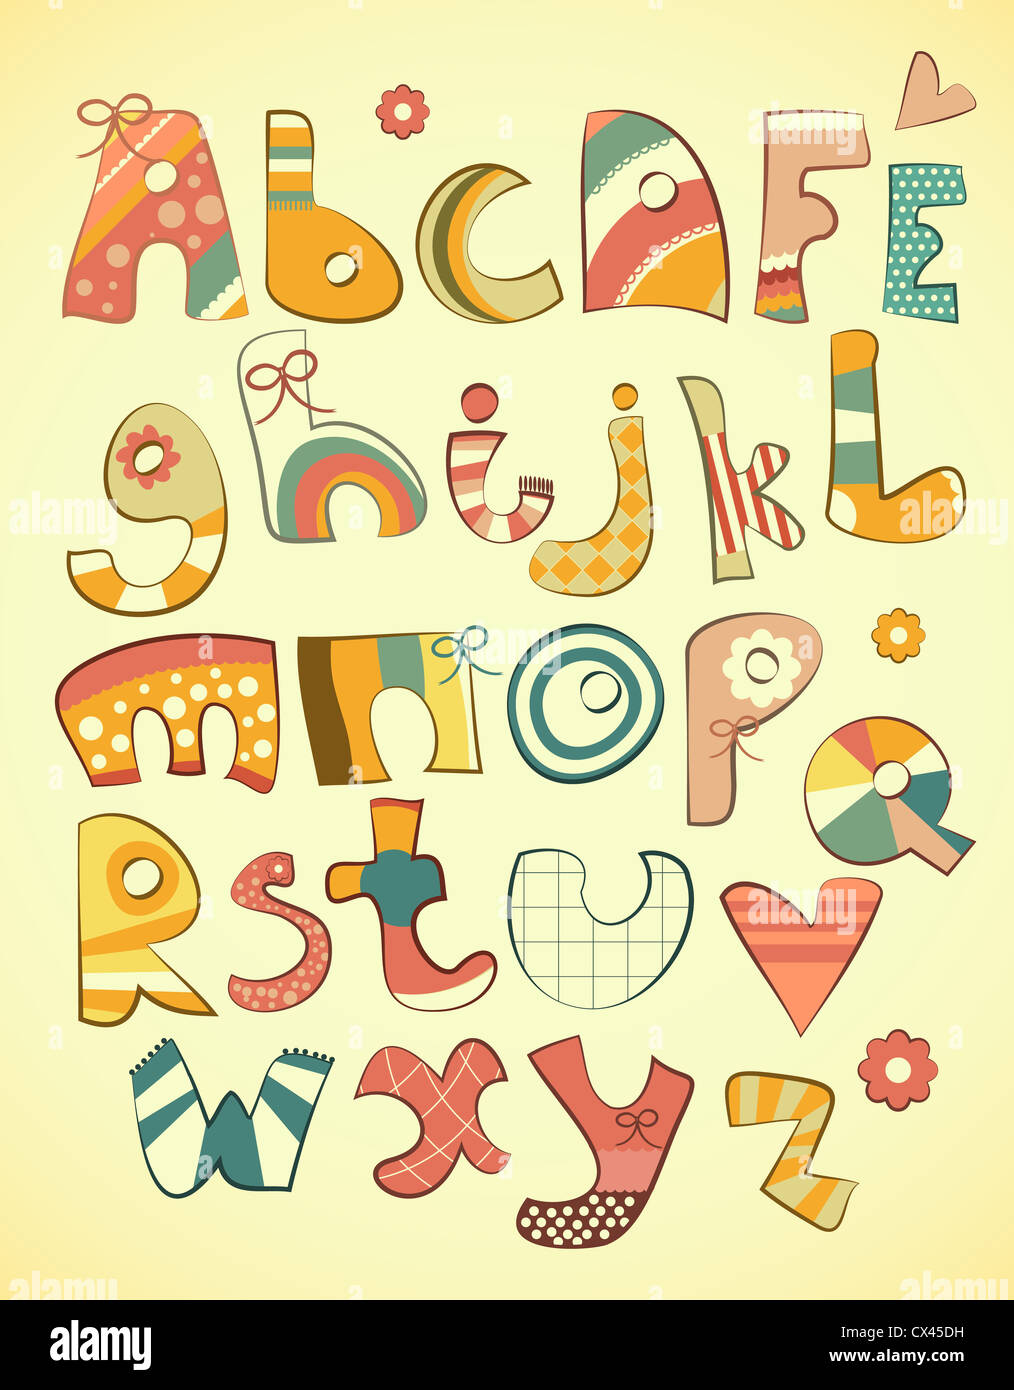 Alphabet design in fun doodle style letters A-Z - illustration Stock